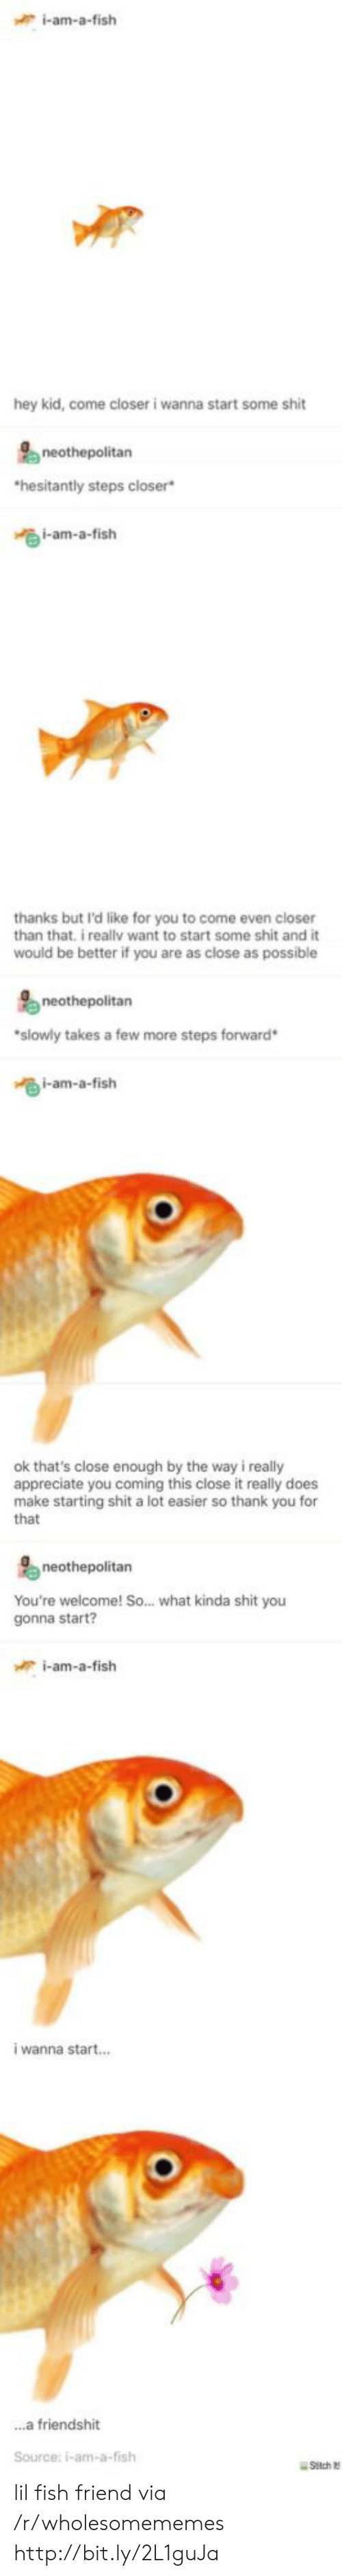 Shit, Thank You, and Appreciate: i-am-a-fish  hey kid, come closer i wanna start some shit  hesitantly steps closer  i-am-a-fish  thanks but I'd like for you to come even closer  than that. i reallv want to start some shit and it  would be better if you are as close as possible  neothepolitan  slowly takes a few more steps forward  i-am-a-fish  ok that's close enough by the way i really  appreciate you coming this close it really does  make starting shit a lot easier so thank you for  that  neothepolitan  You're welcome! So... what kinda shit you  gonna start?  i-am-a-fish  i wanna start..  ...a friendshit  Source: i-am-a-fish lil fish friend via /r/wholesomememes http://bit.ly/2L1guJa